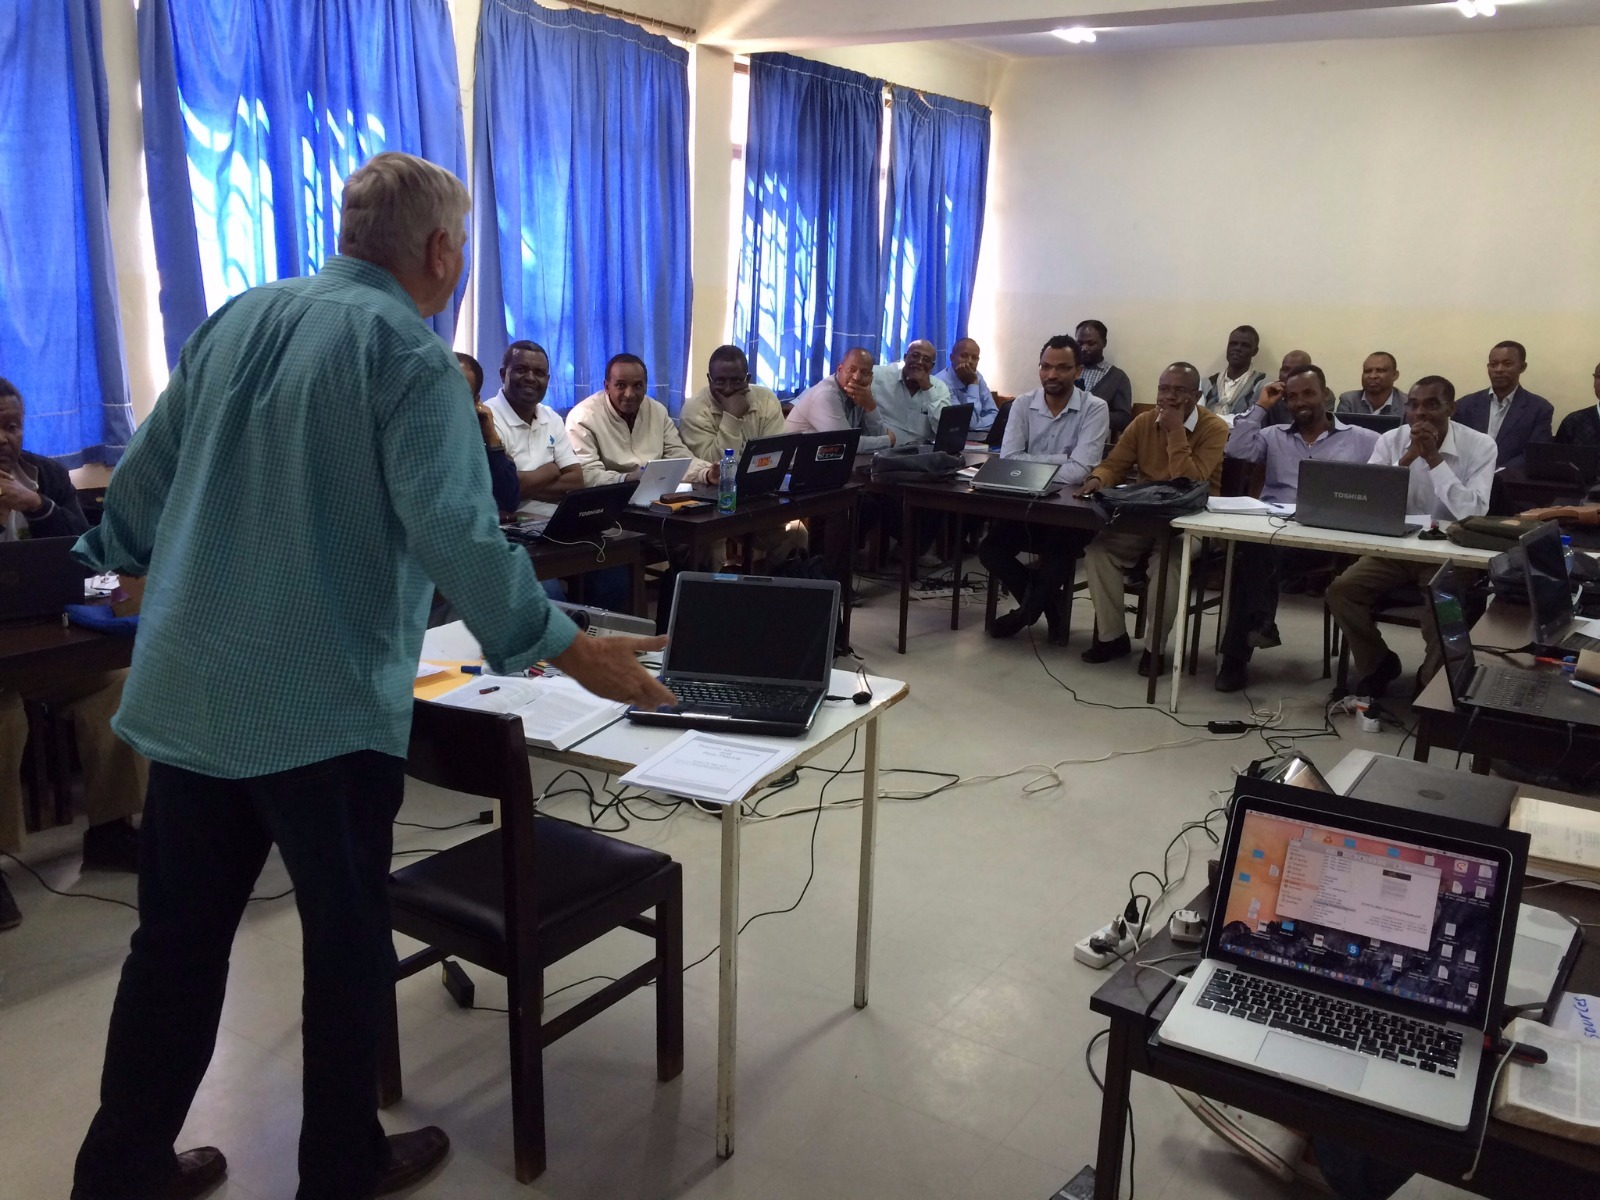 Joe Harding of SIM met with the Doctor of Ministry students in December 2015.